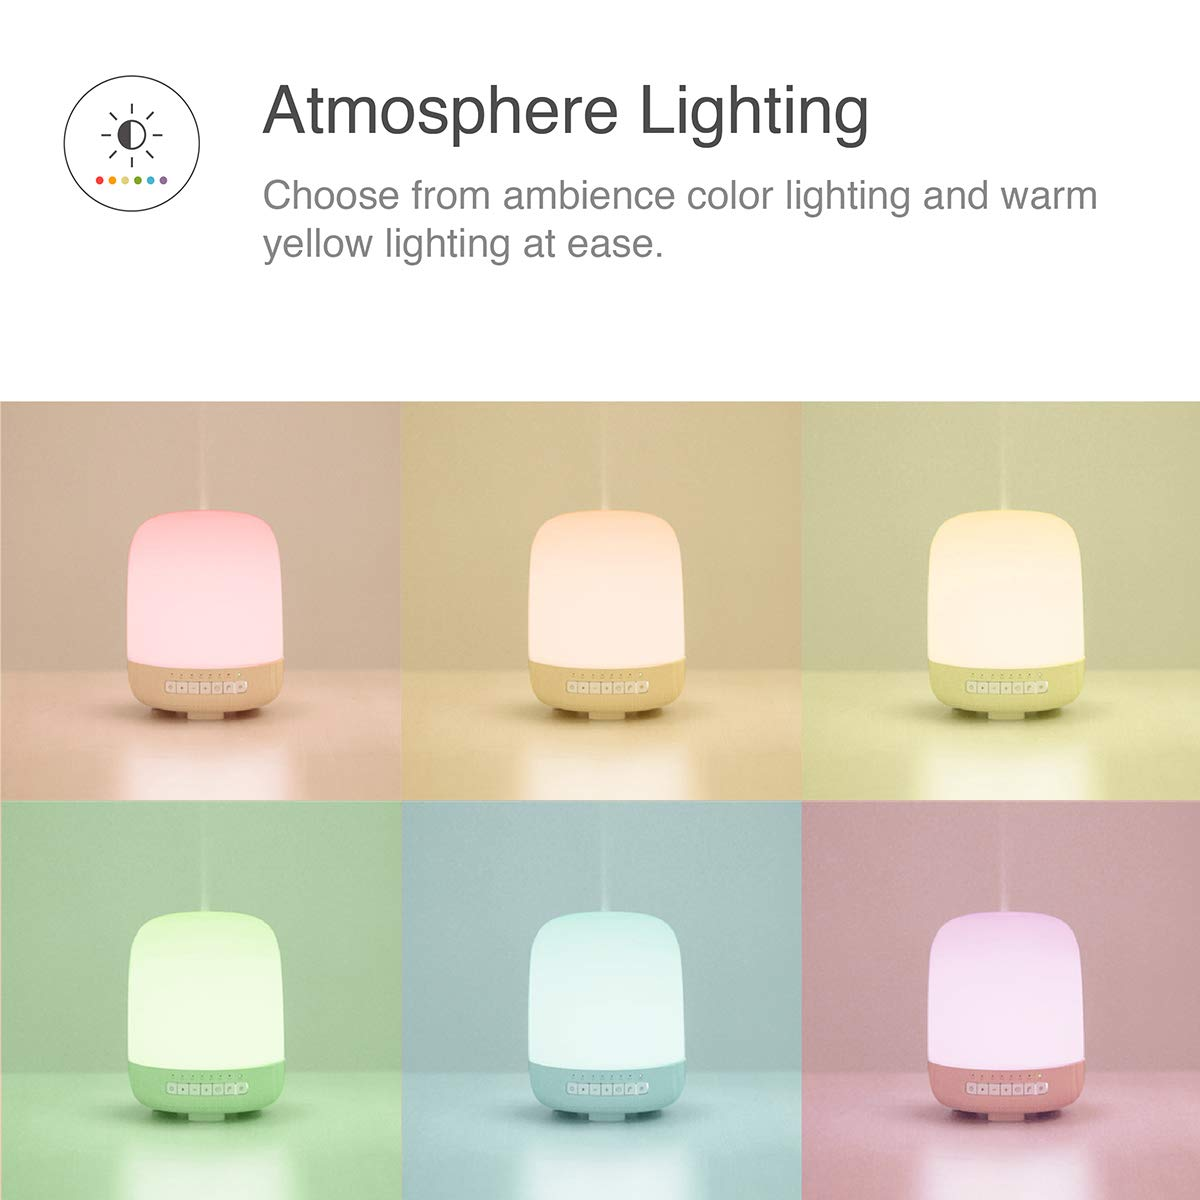 emoi 3-in-1 Aromatherapy Diffuser, Bluetooth Speaker and Multiple Colours Lamp (200ml) by emoi (Image #3)